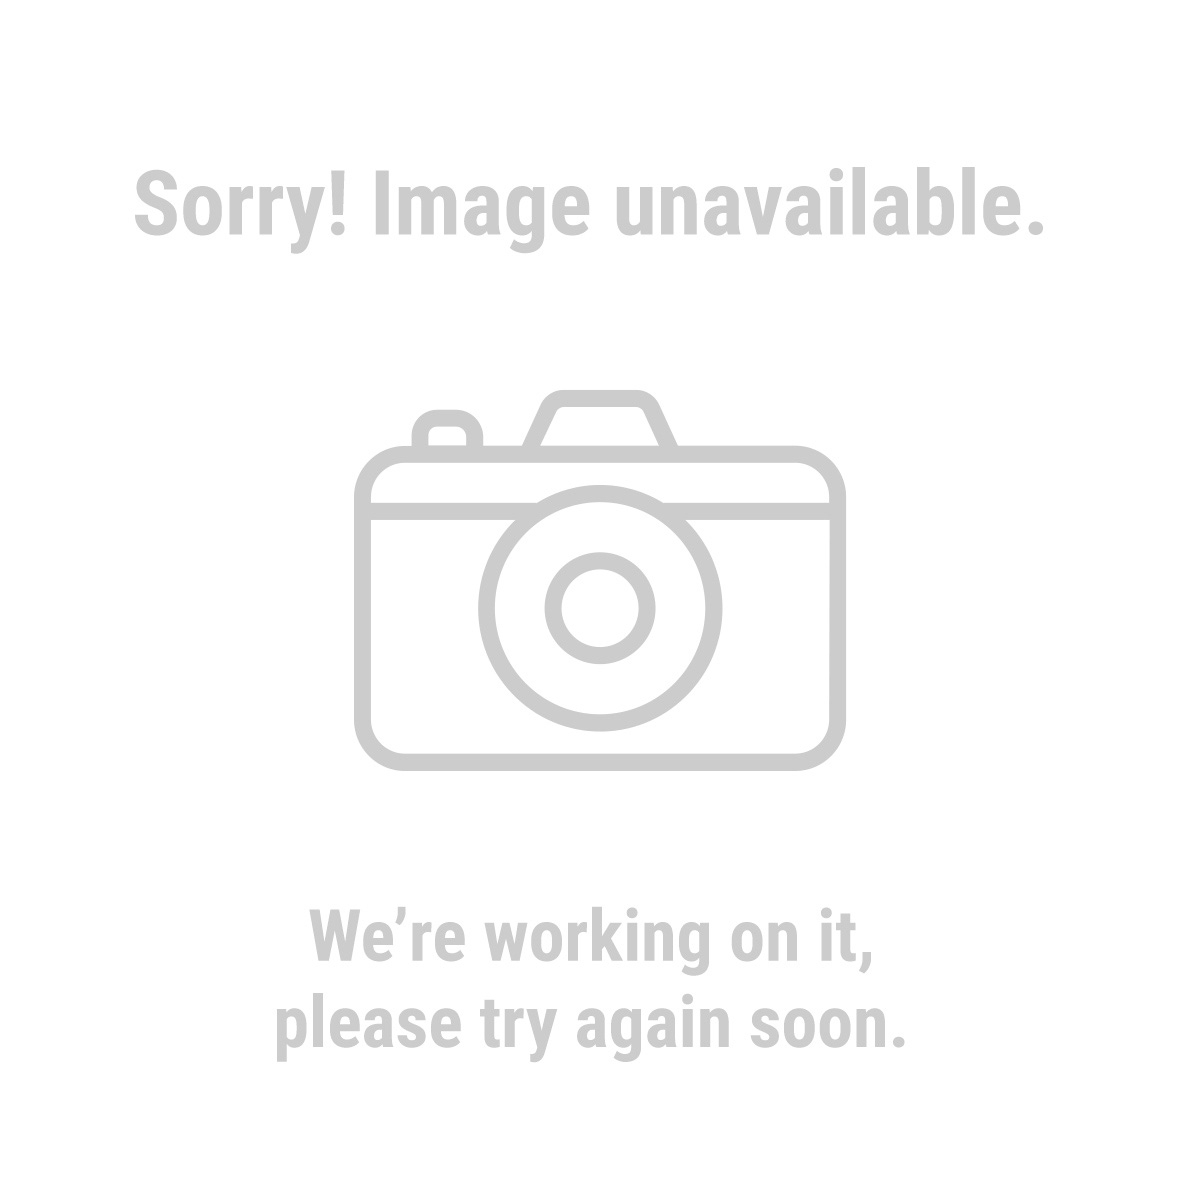 Central Pneumatic 68219 125 PSI Air Flow Regulator with Gauge